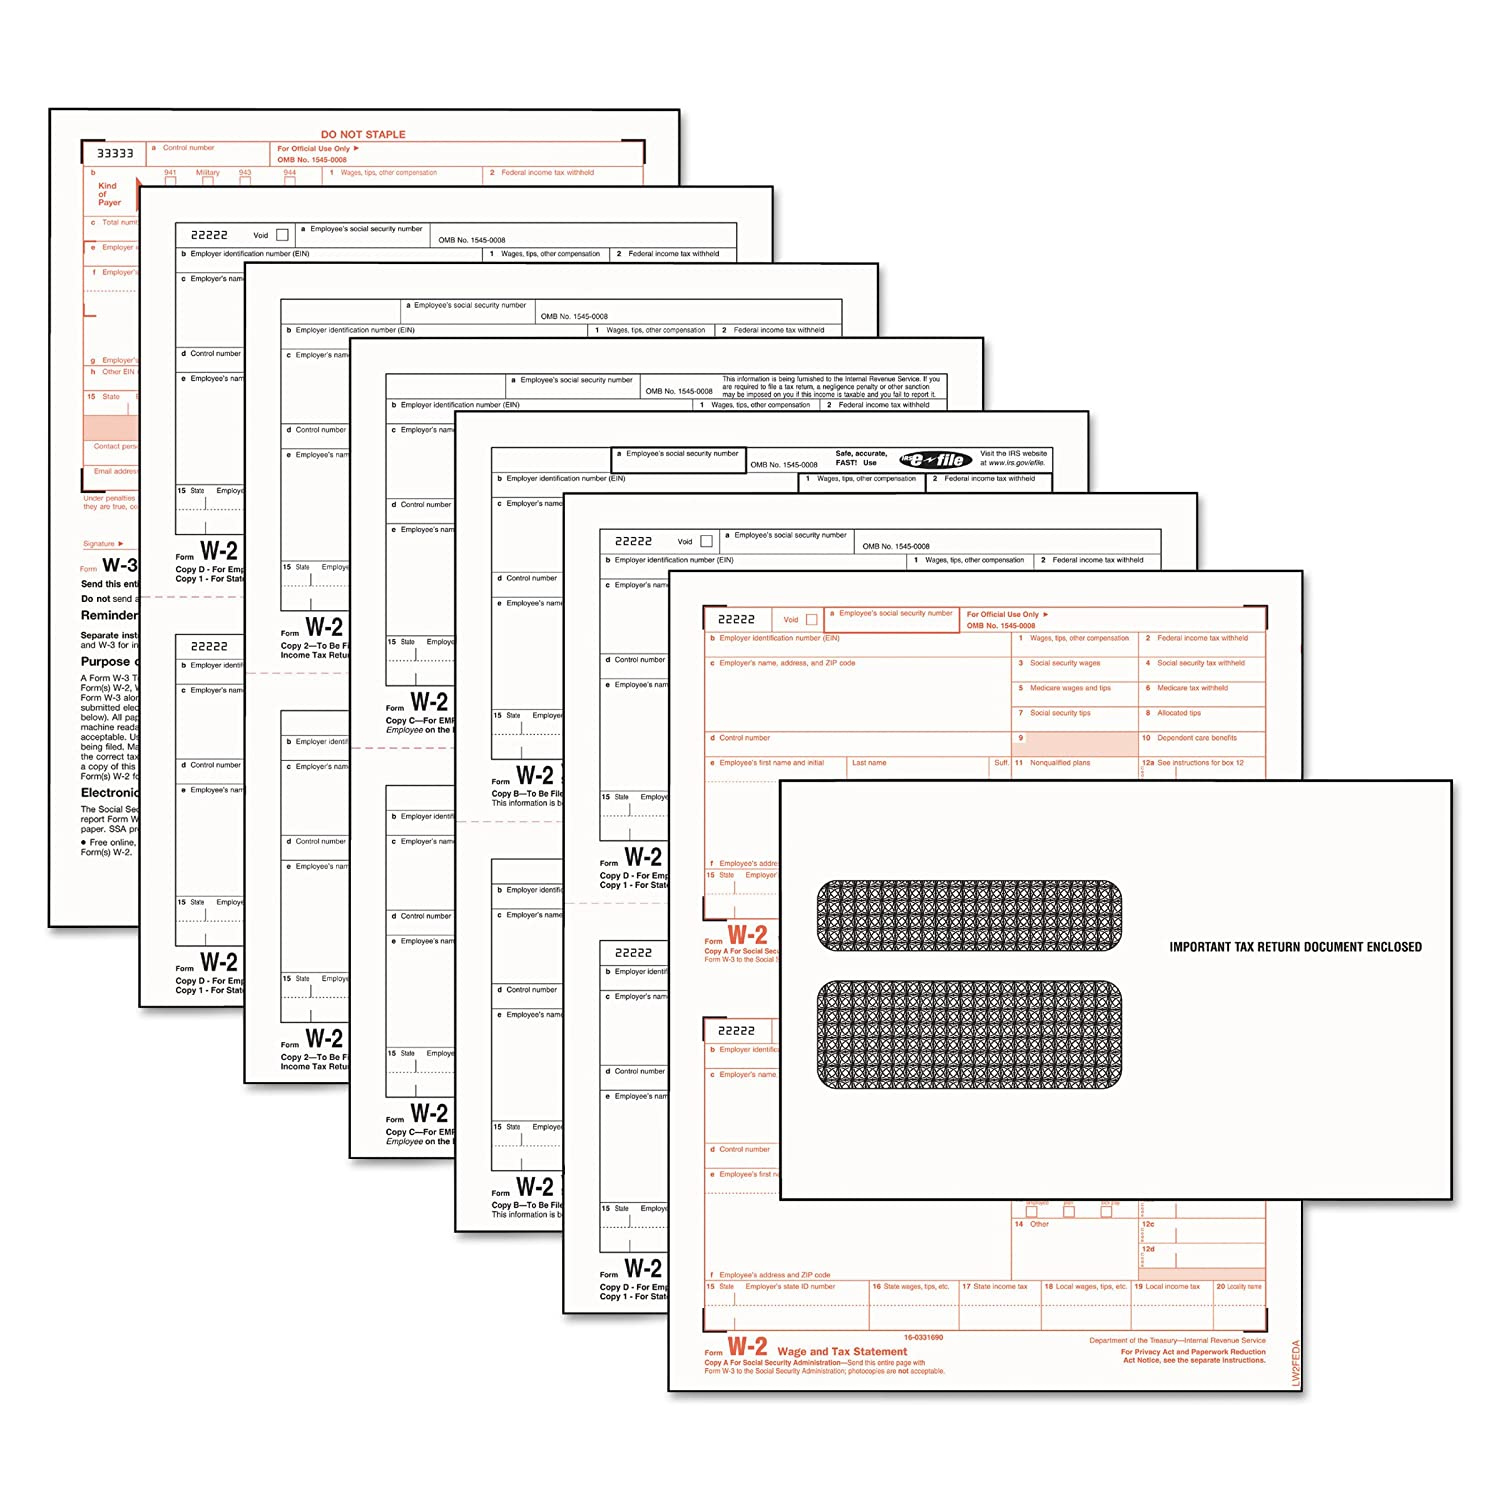 Amazon.com : TOPS 22904KIT W-2 Tax Form/Envelope Kits, 8 1/2 x 5 1/2 ...